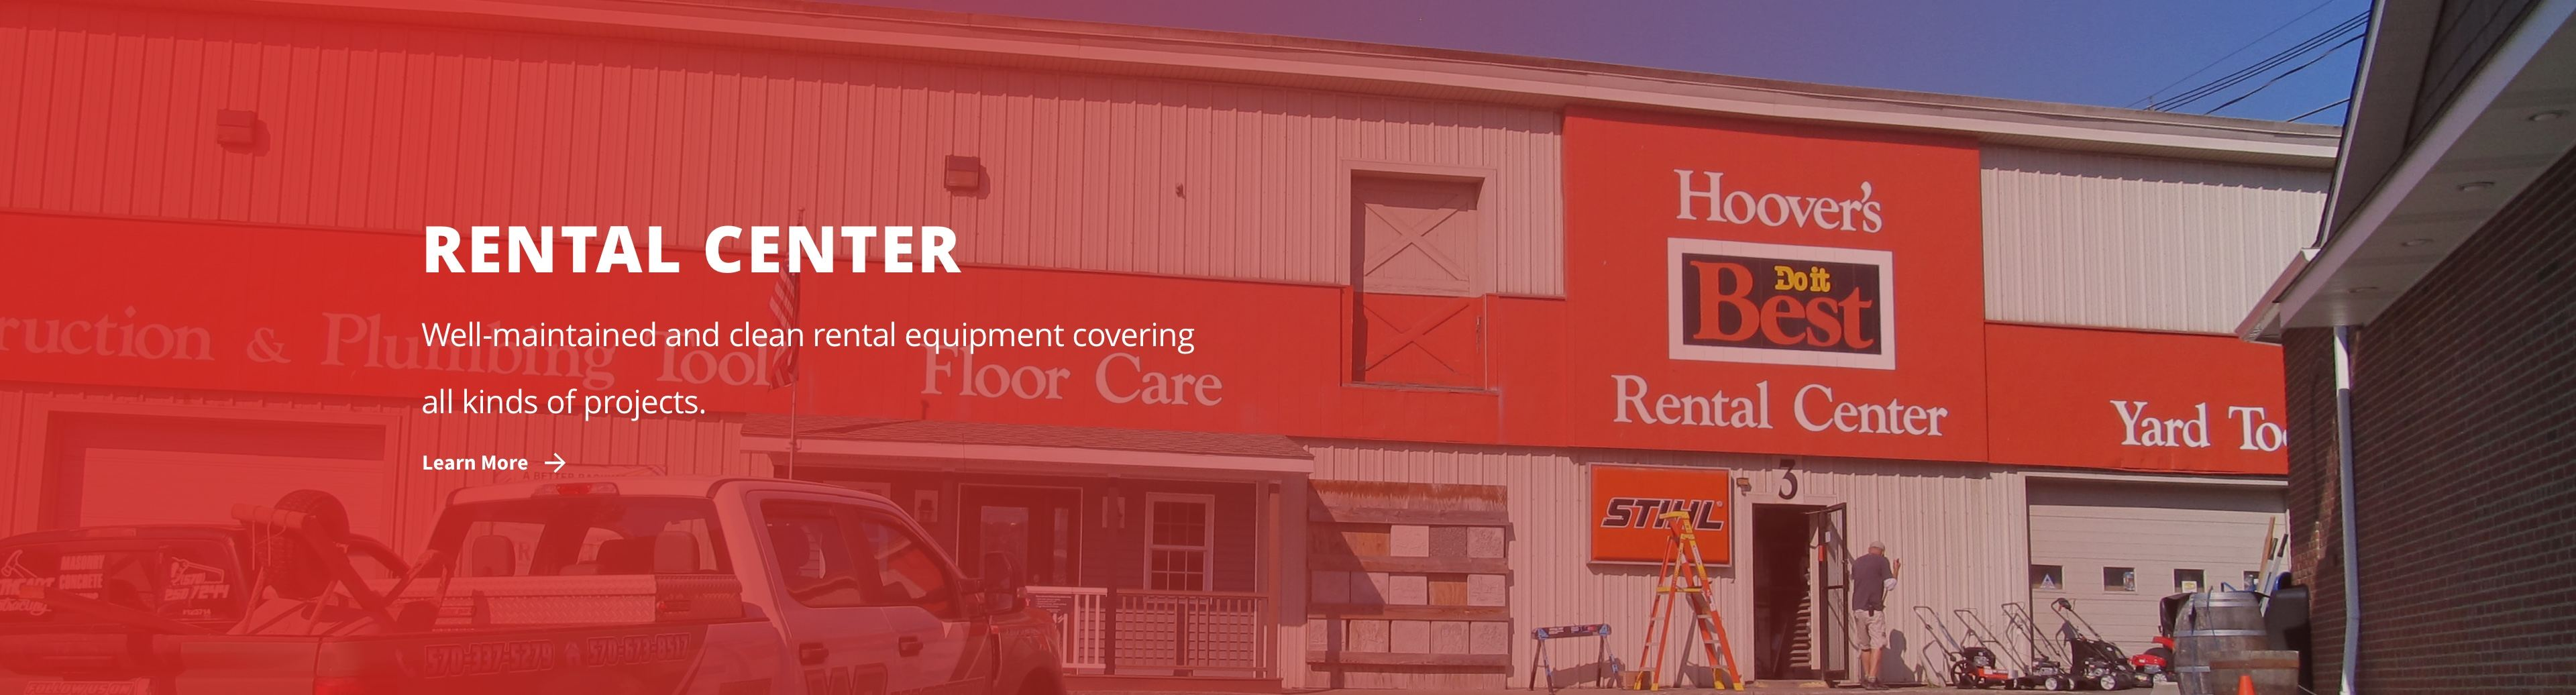 Rental Center - Well-maintained and clean rental equipment covering all kinds of projects